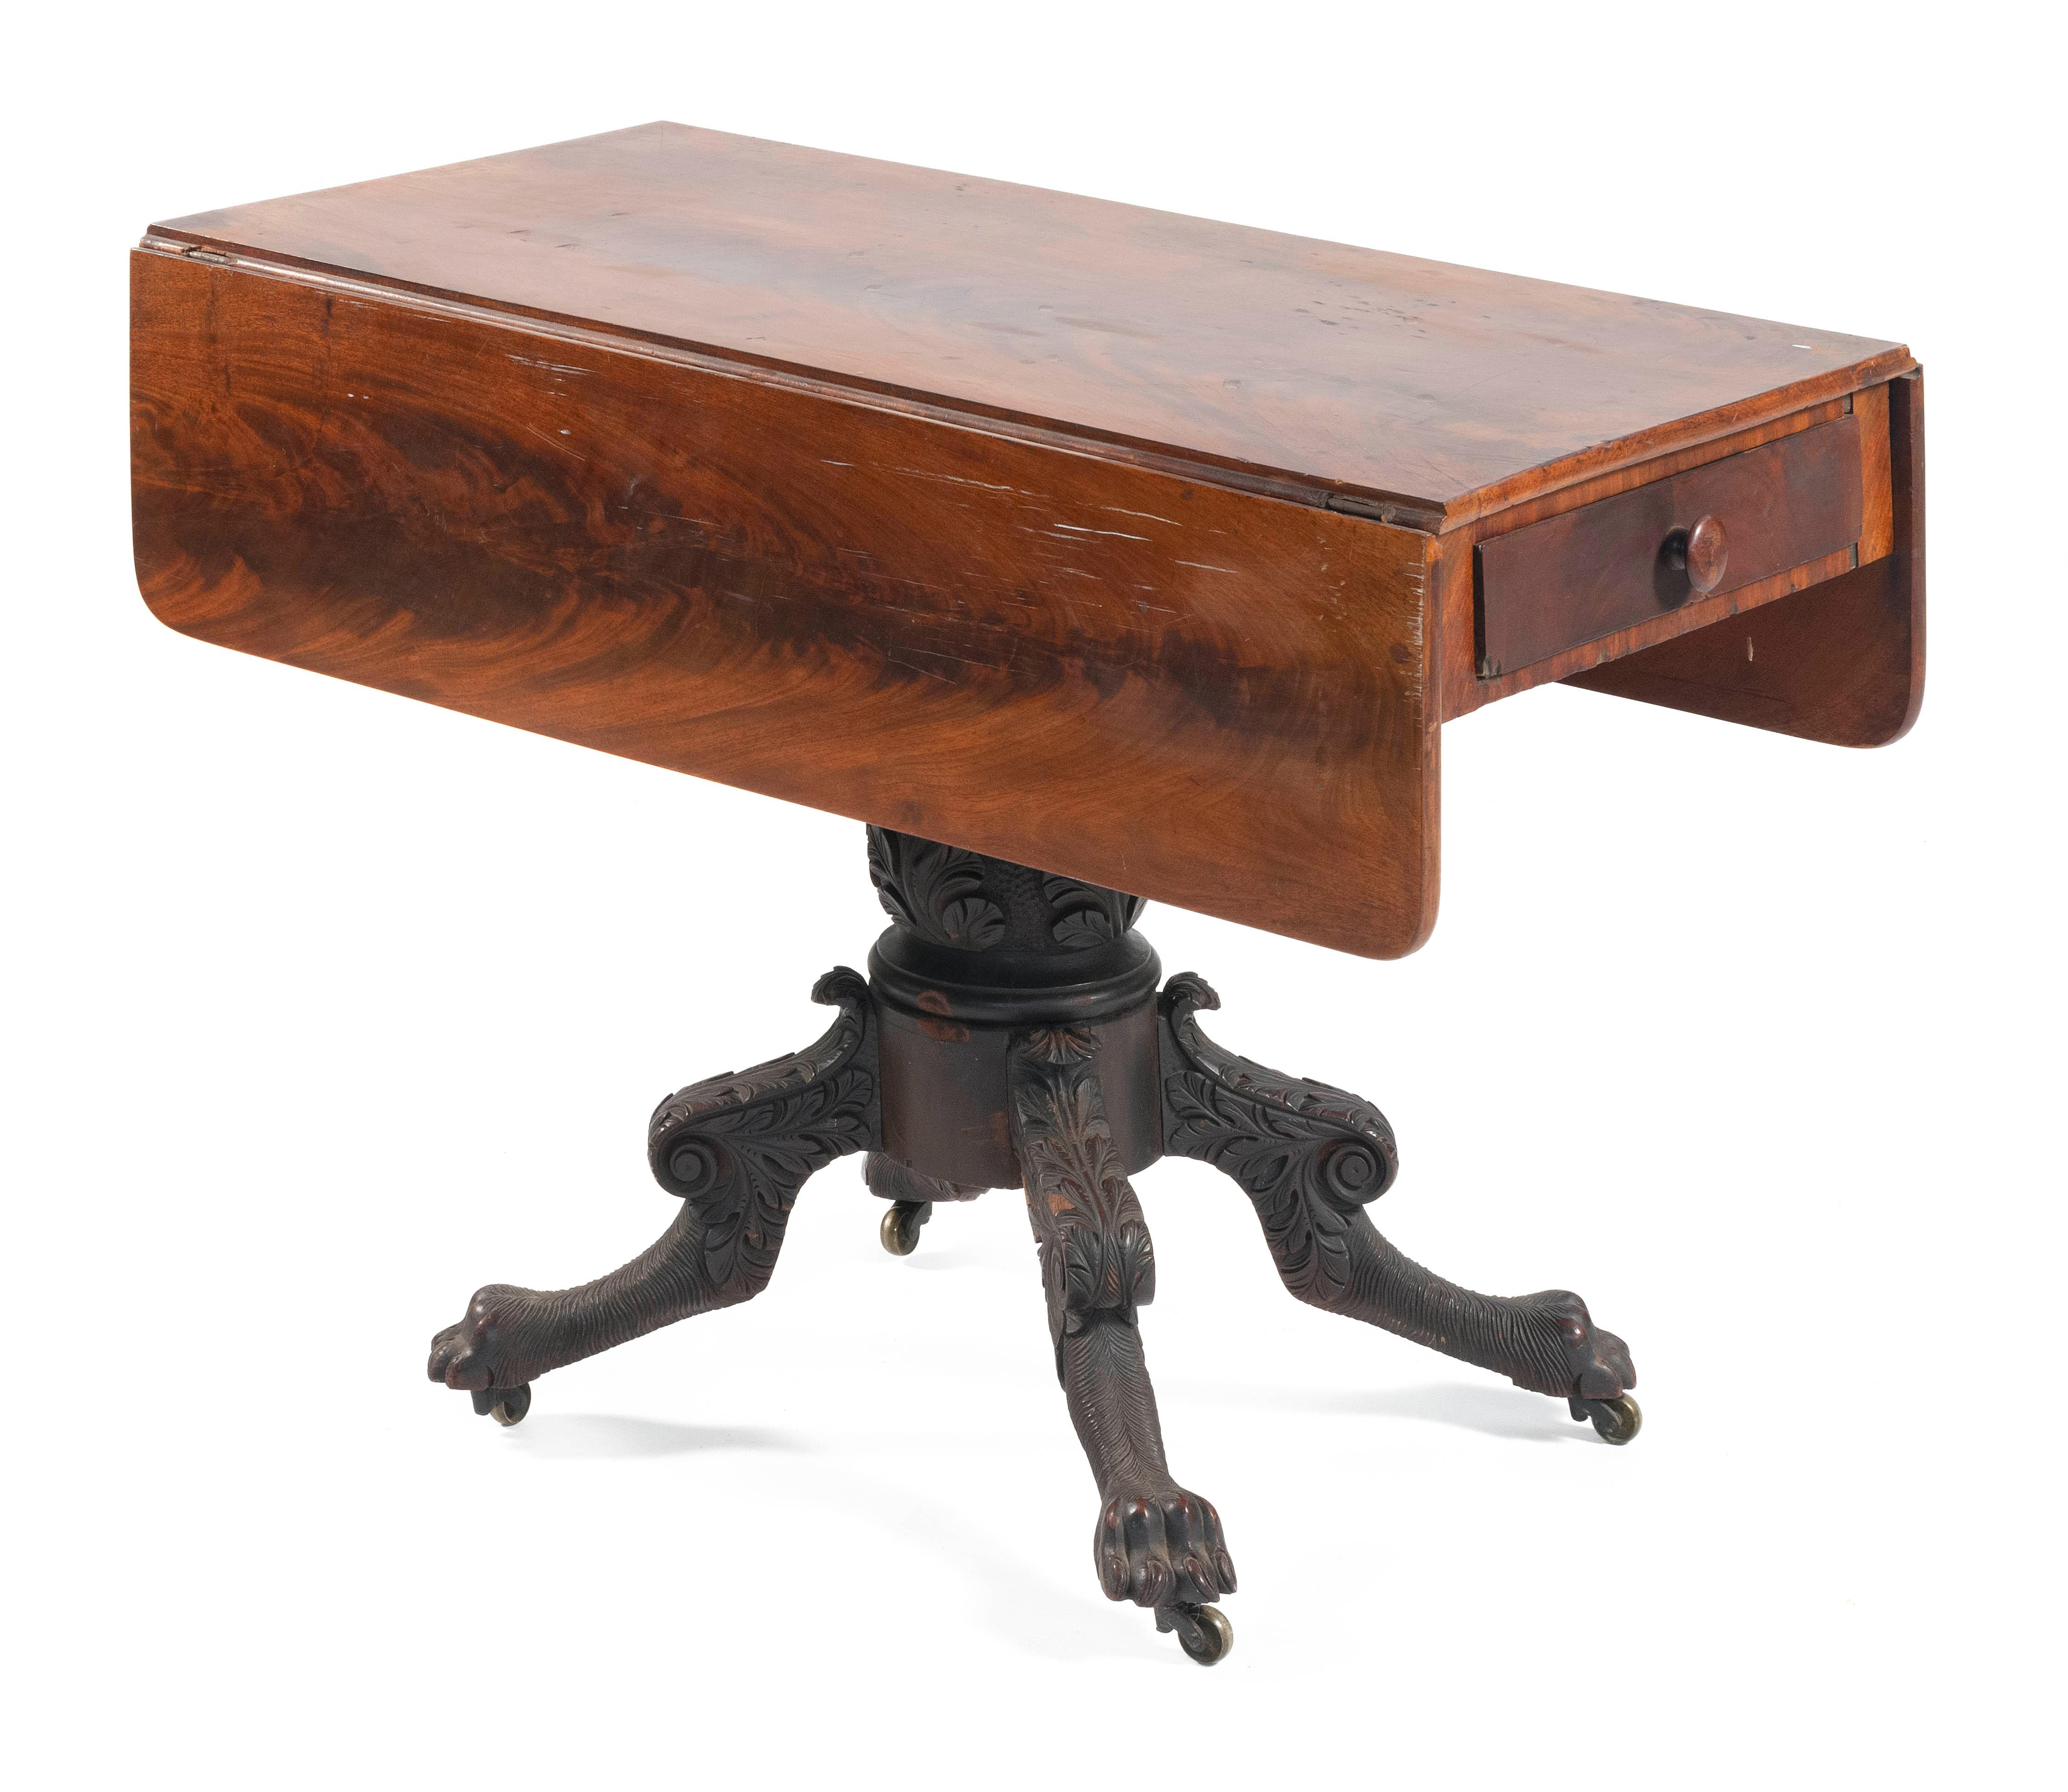 FEDERAL DROP-LEAF TABLE In mahogany and mahogany veneer. Top and leaves in select flame mahogany. Single drawer in apron. Acanthus-c...